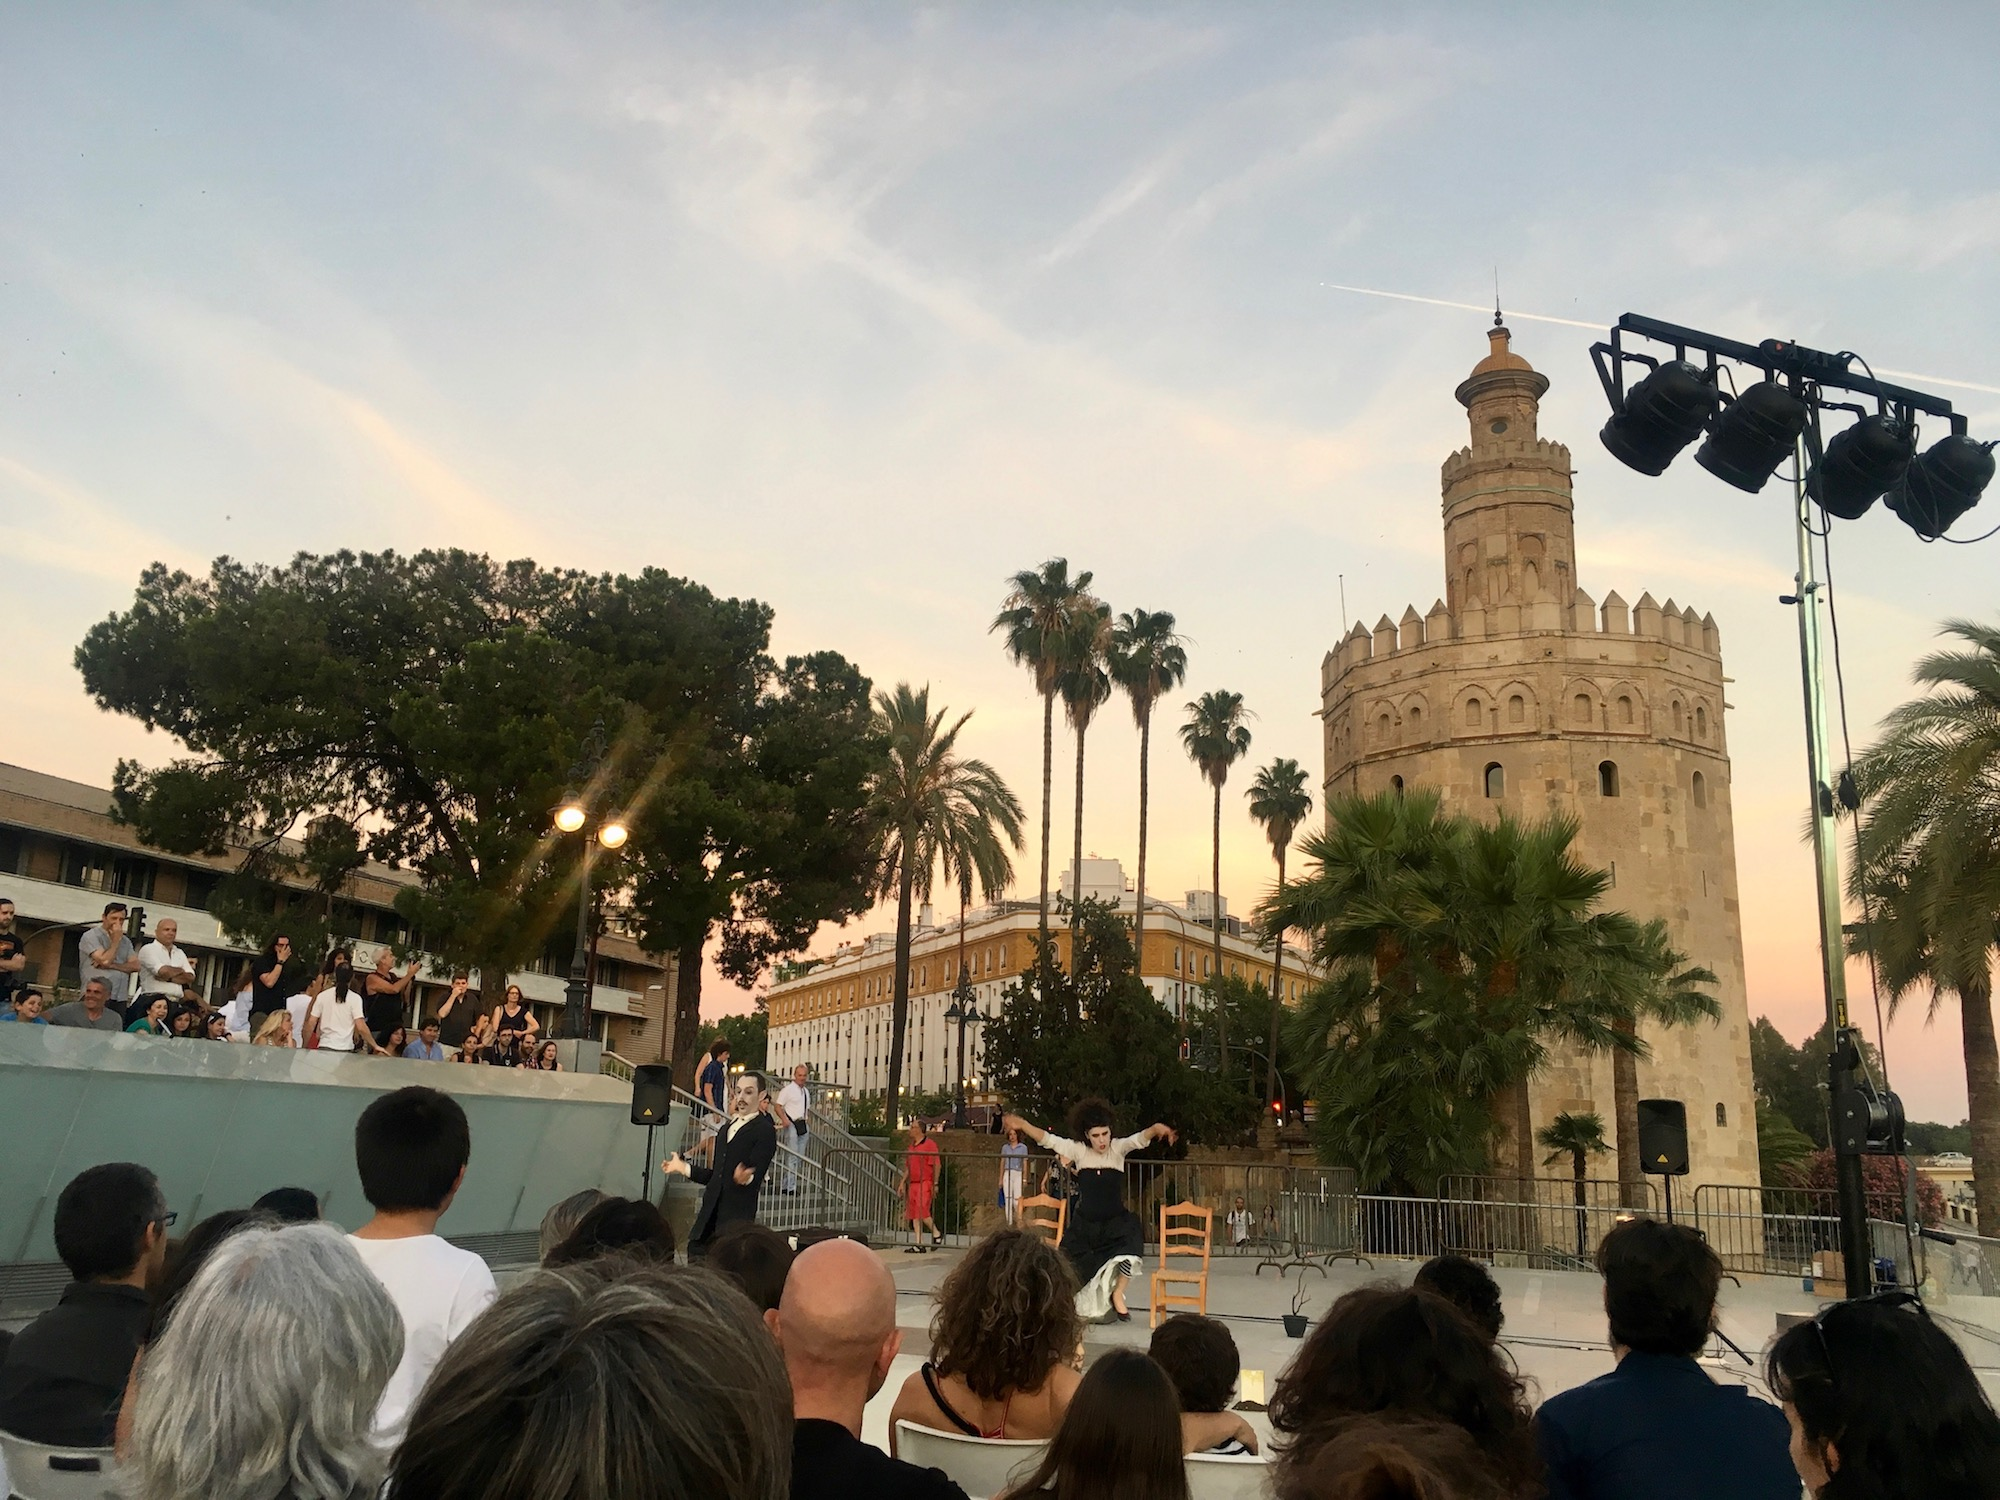 free circus performance in front of Torre del Oro